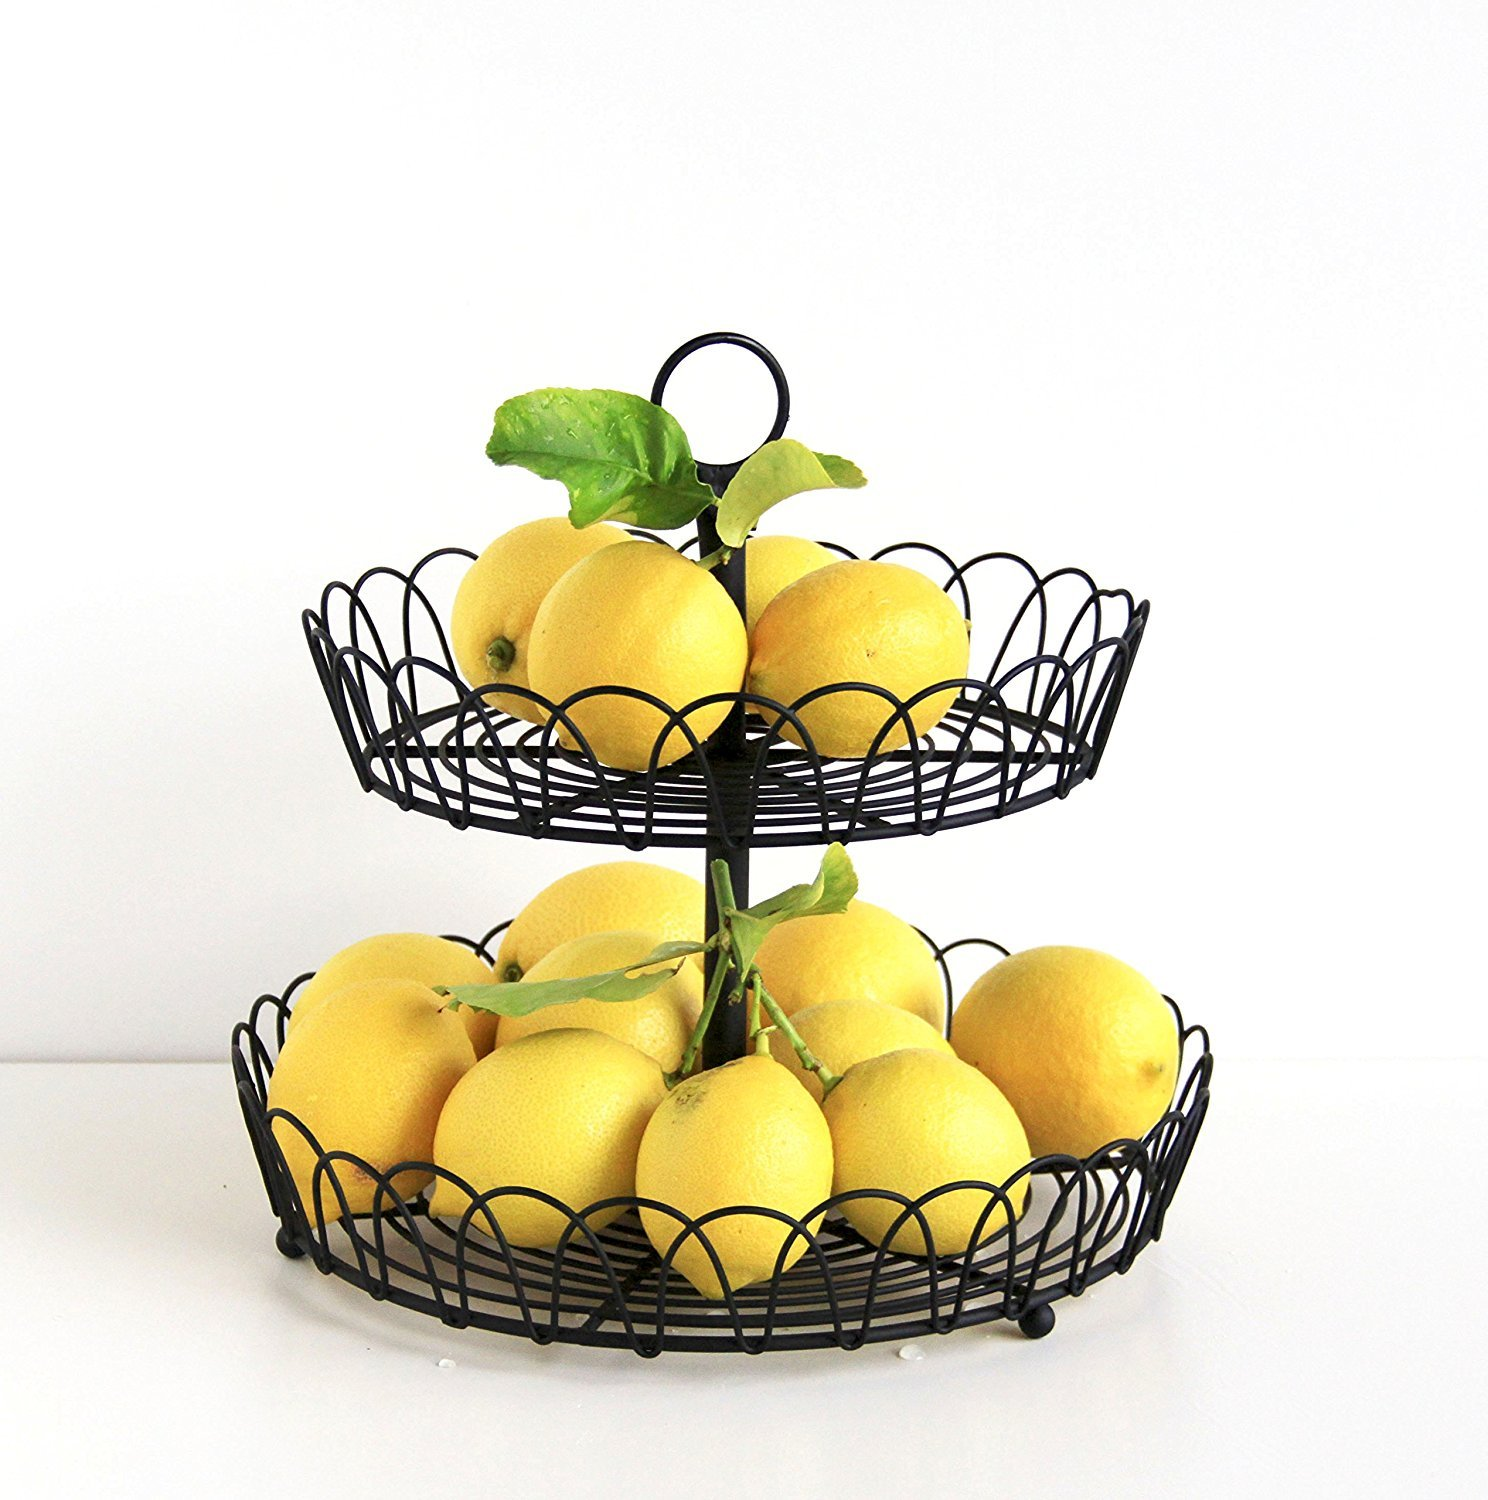 Amazon.com - Tagway Home Black Metal 2-Tiered Stand, Fruit Storage ...